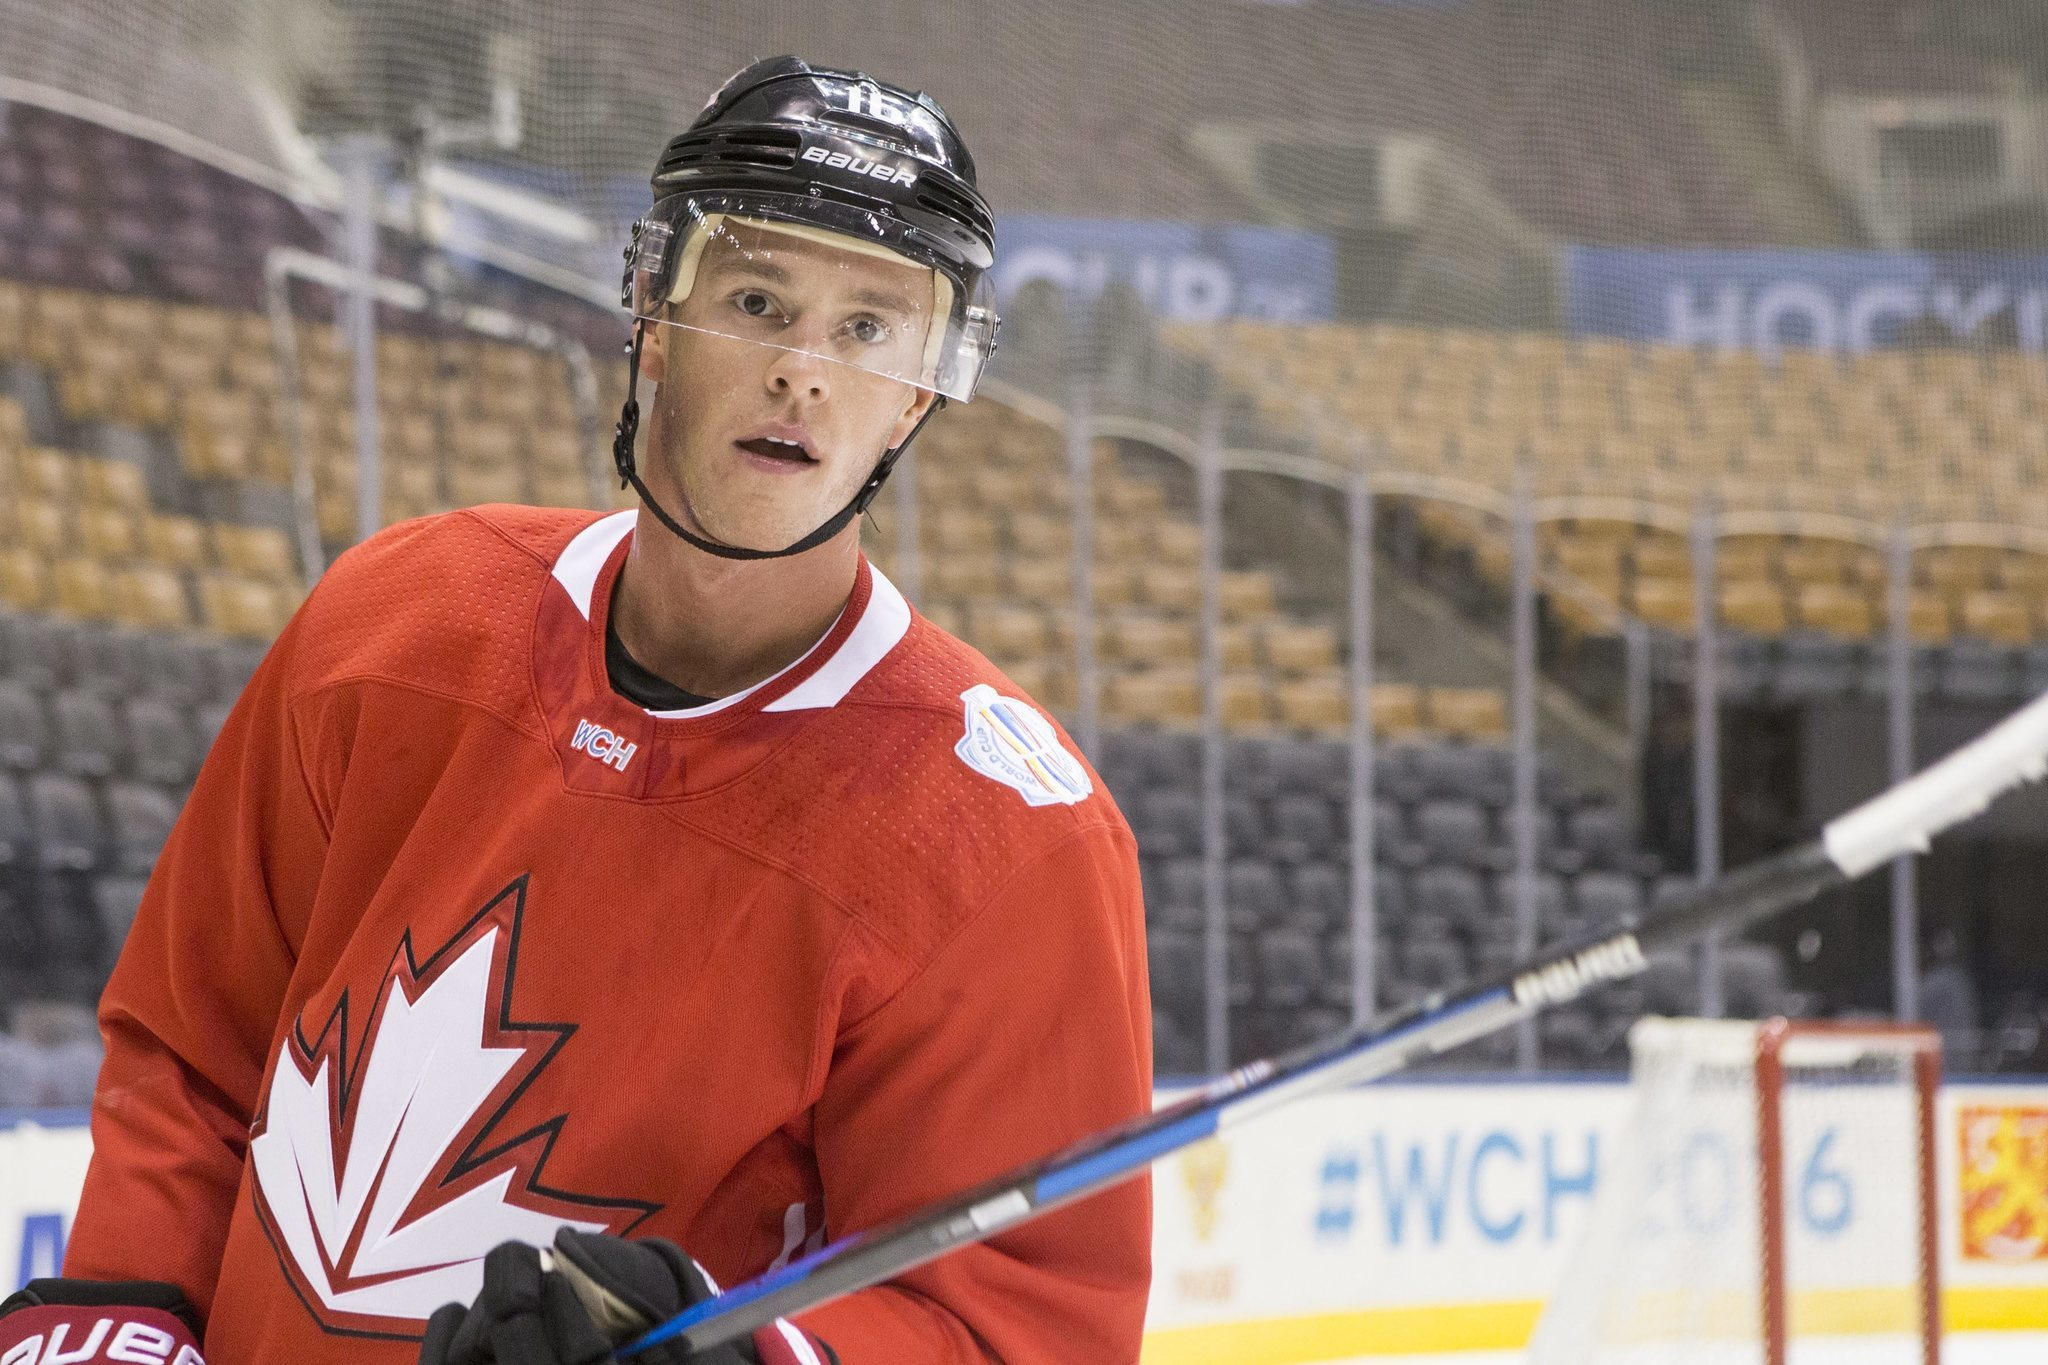 Ct-jonathan-toews-canada-russia-world-cup-spt-0924-20160923